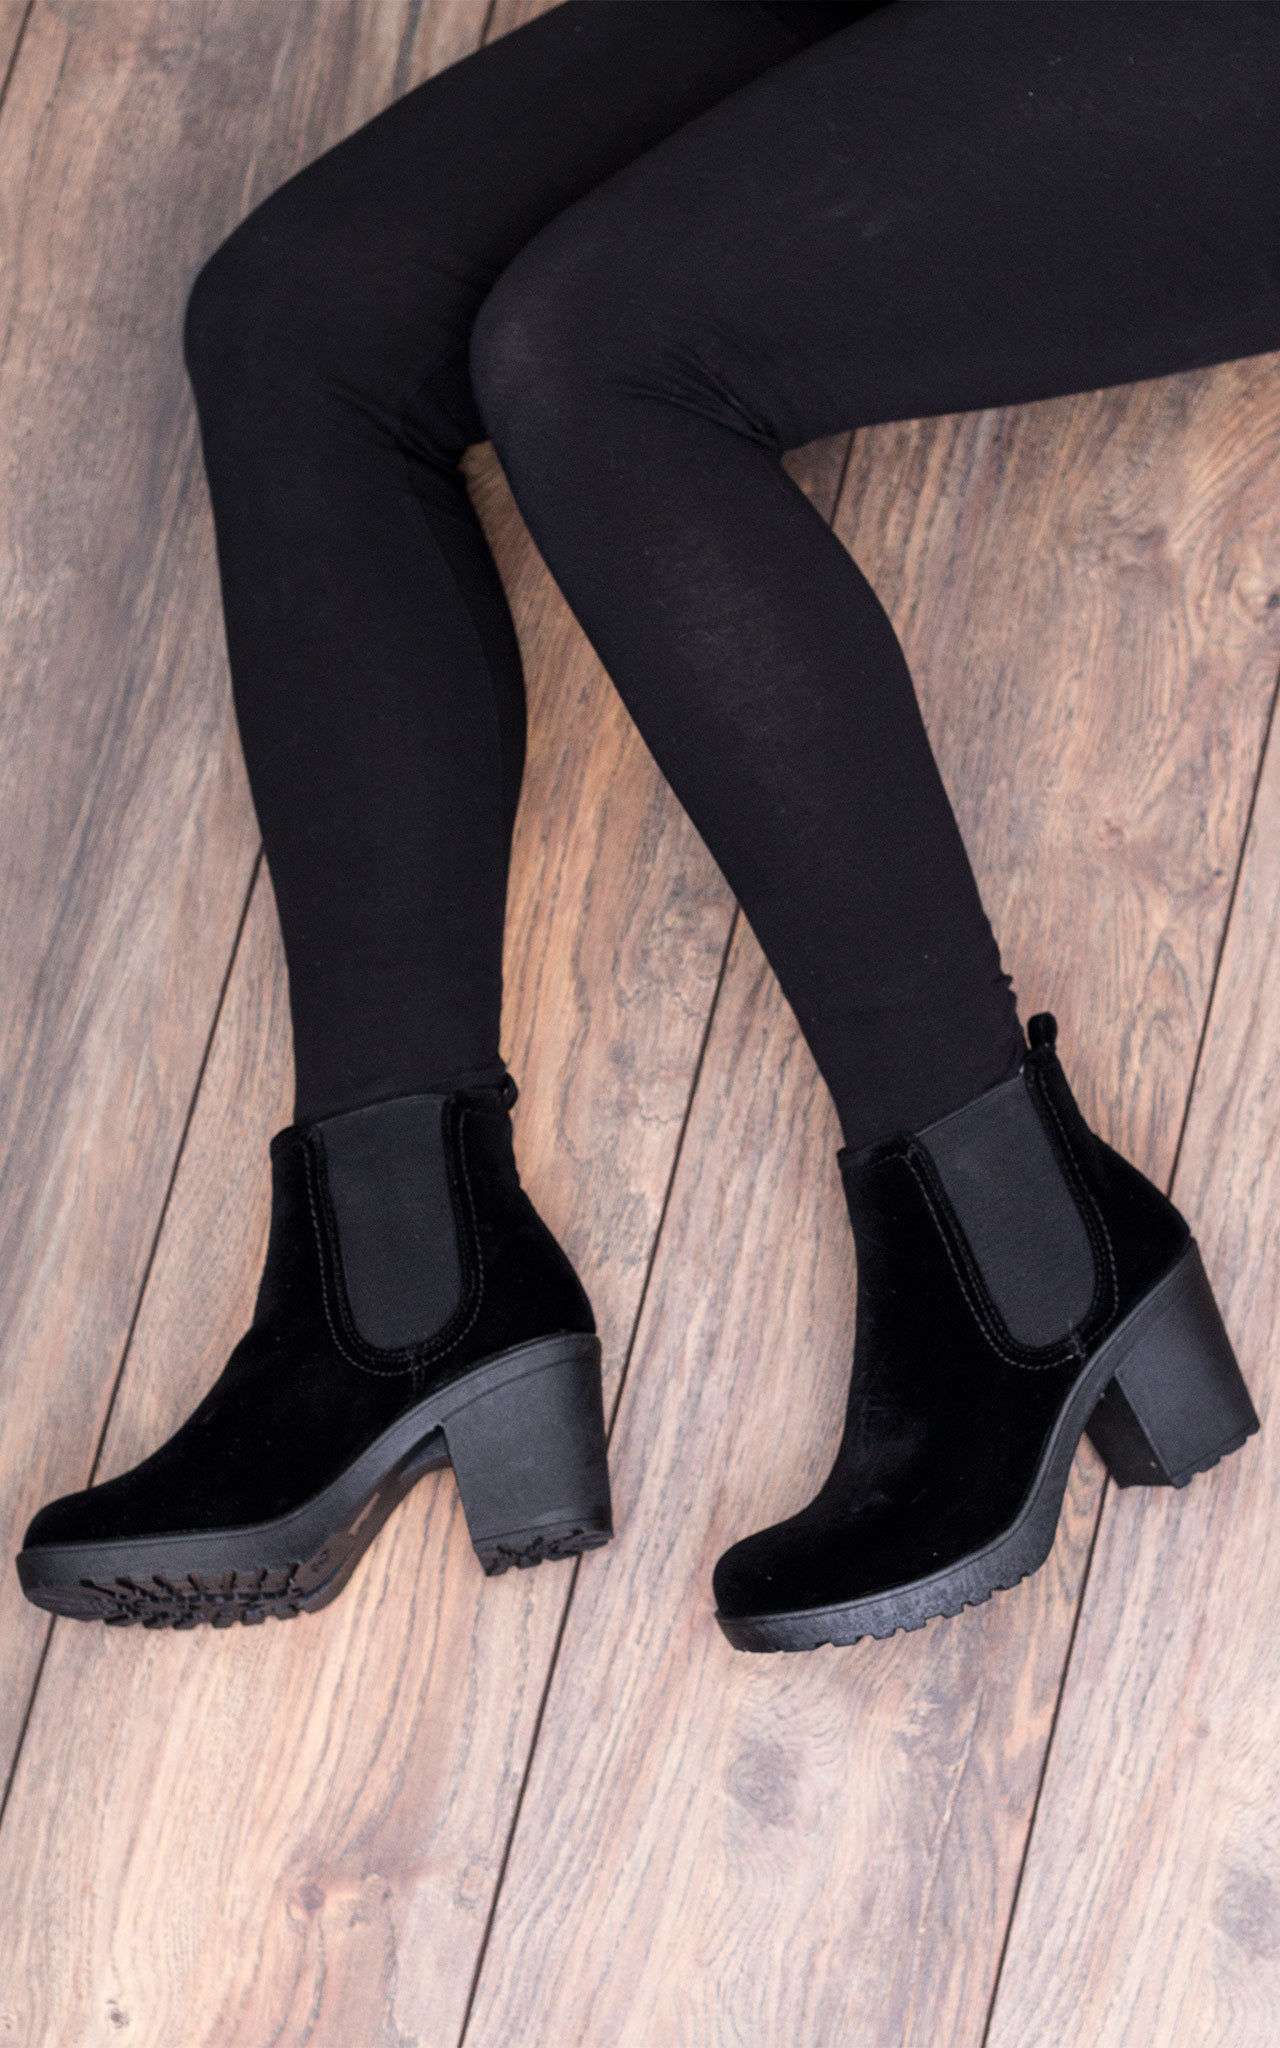 687715fd912f xlarge heeled-cleated-sole-platform-chelsea-ankle-boots-spylovebuy-p648- black-suede-mod.jpg